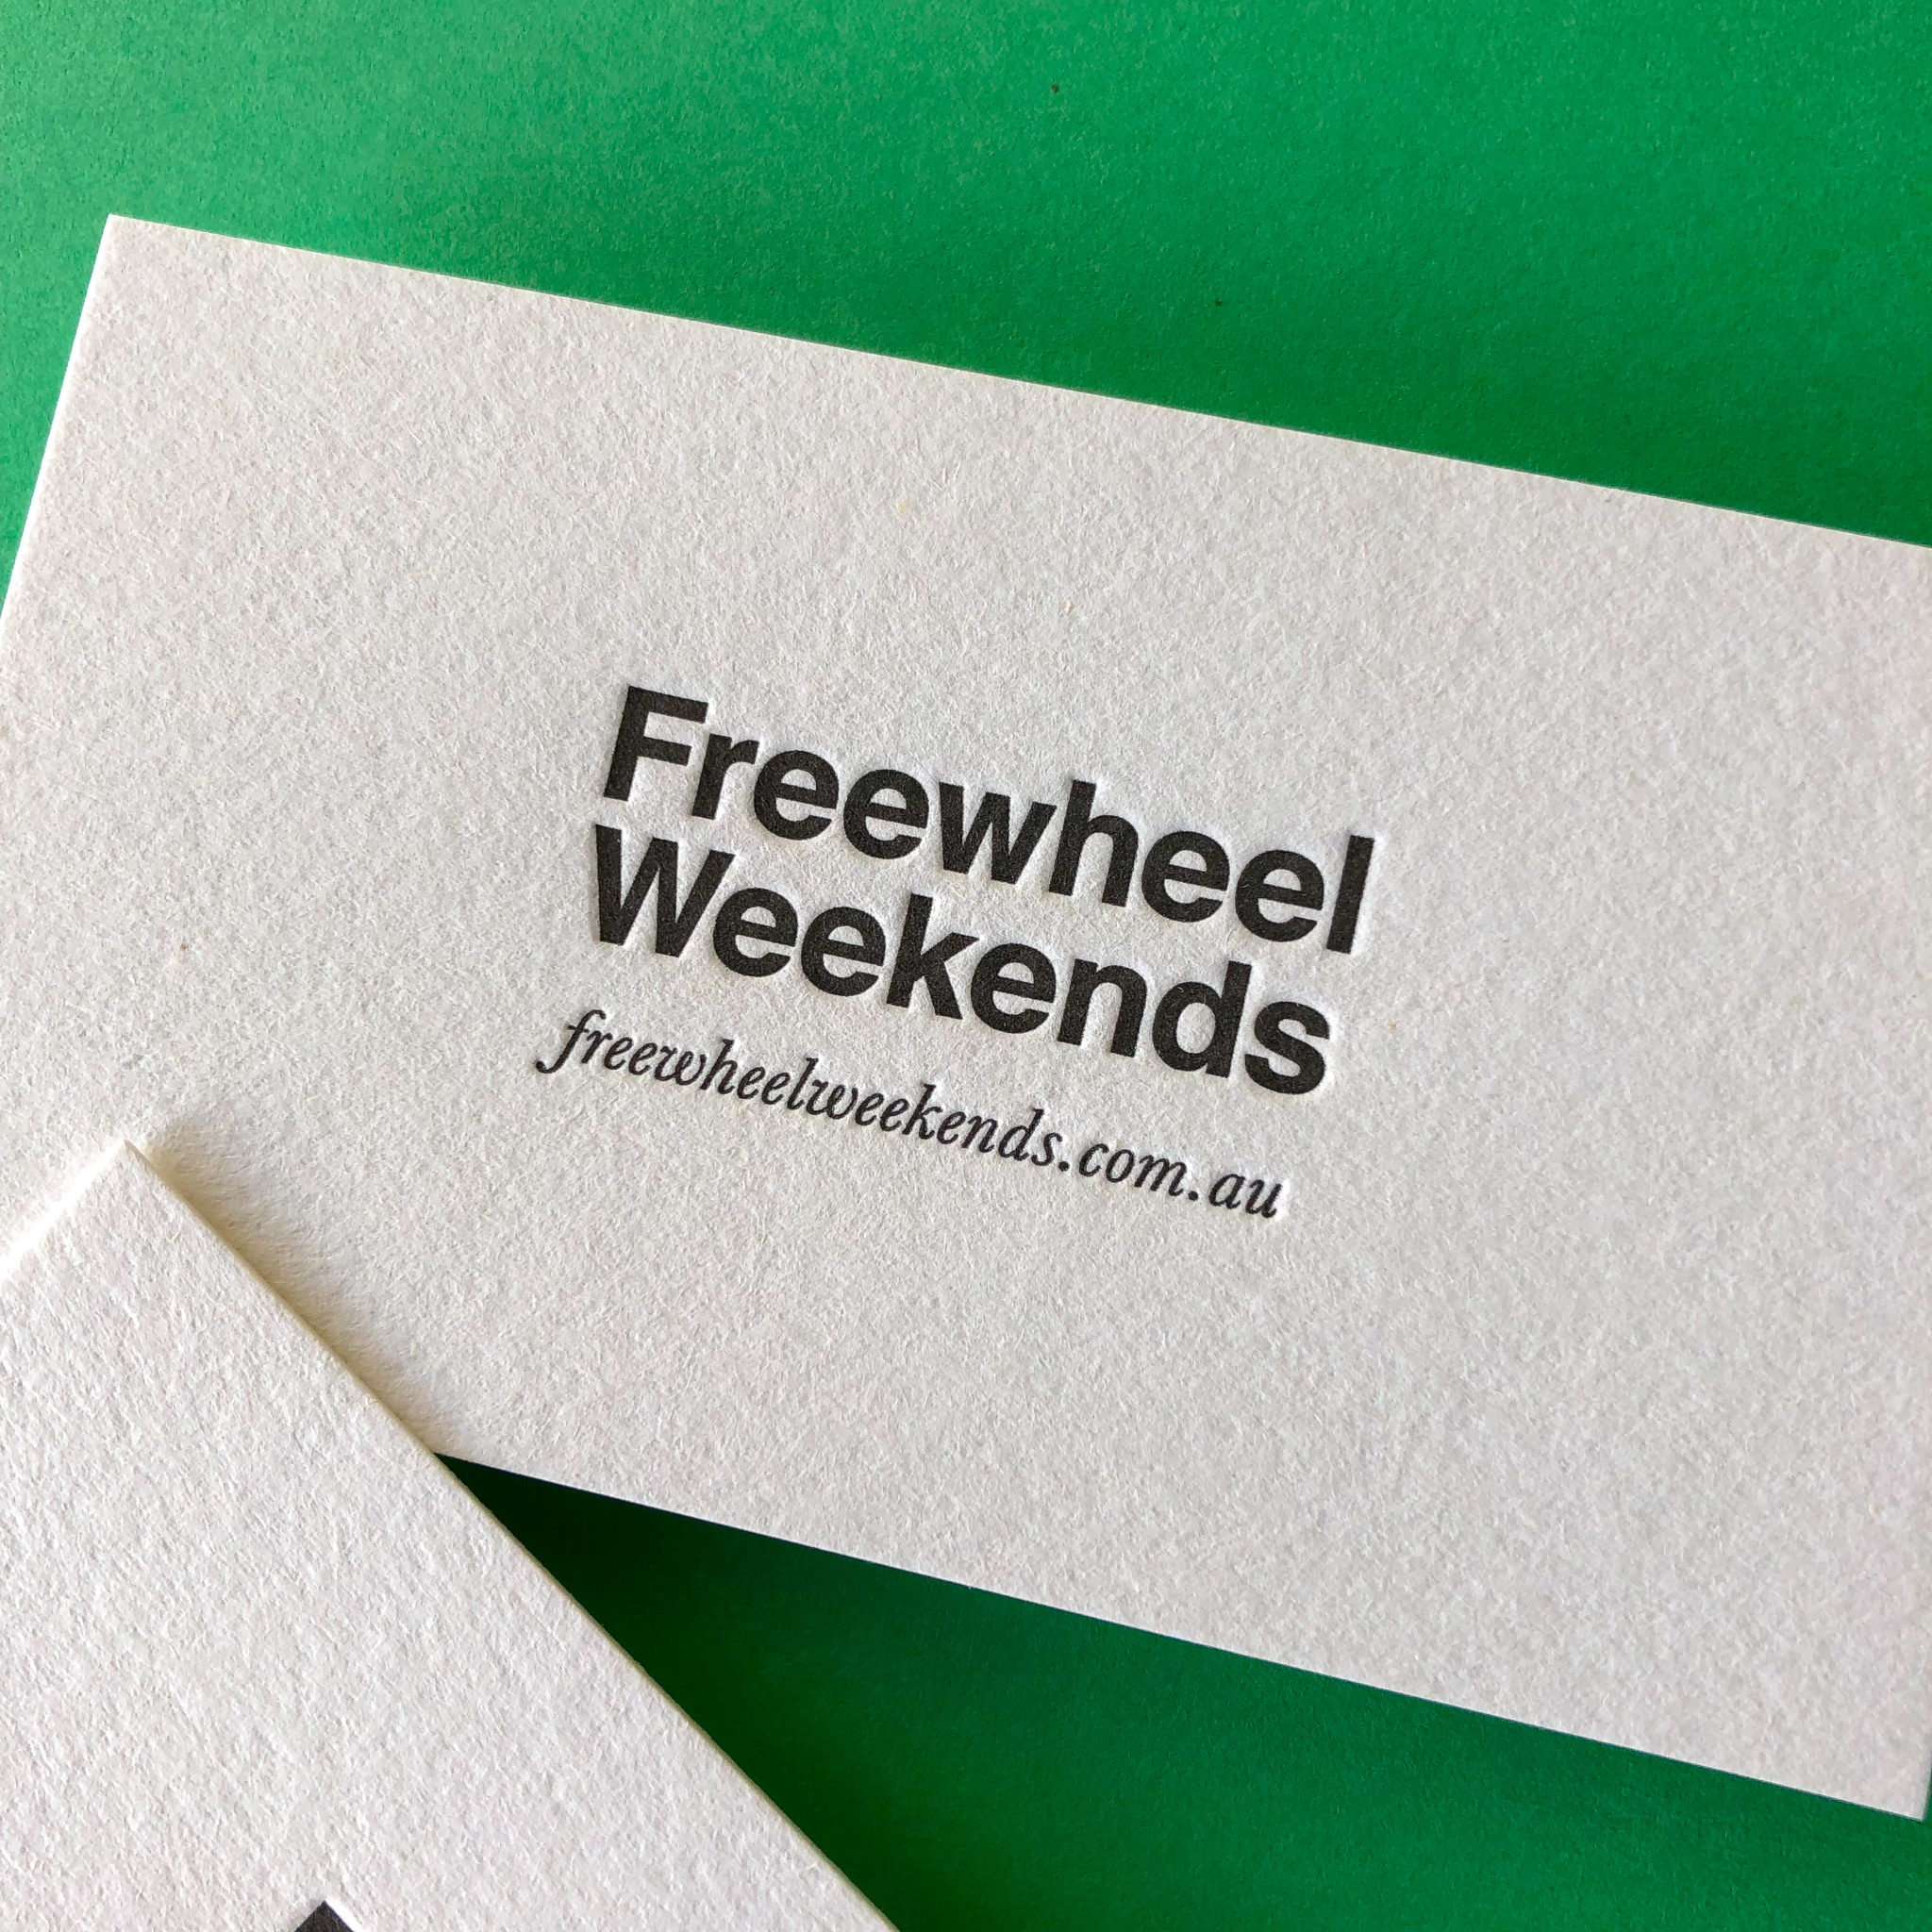 Letterpress standard business cards for Freewheel Weekends on Stephen 3